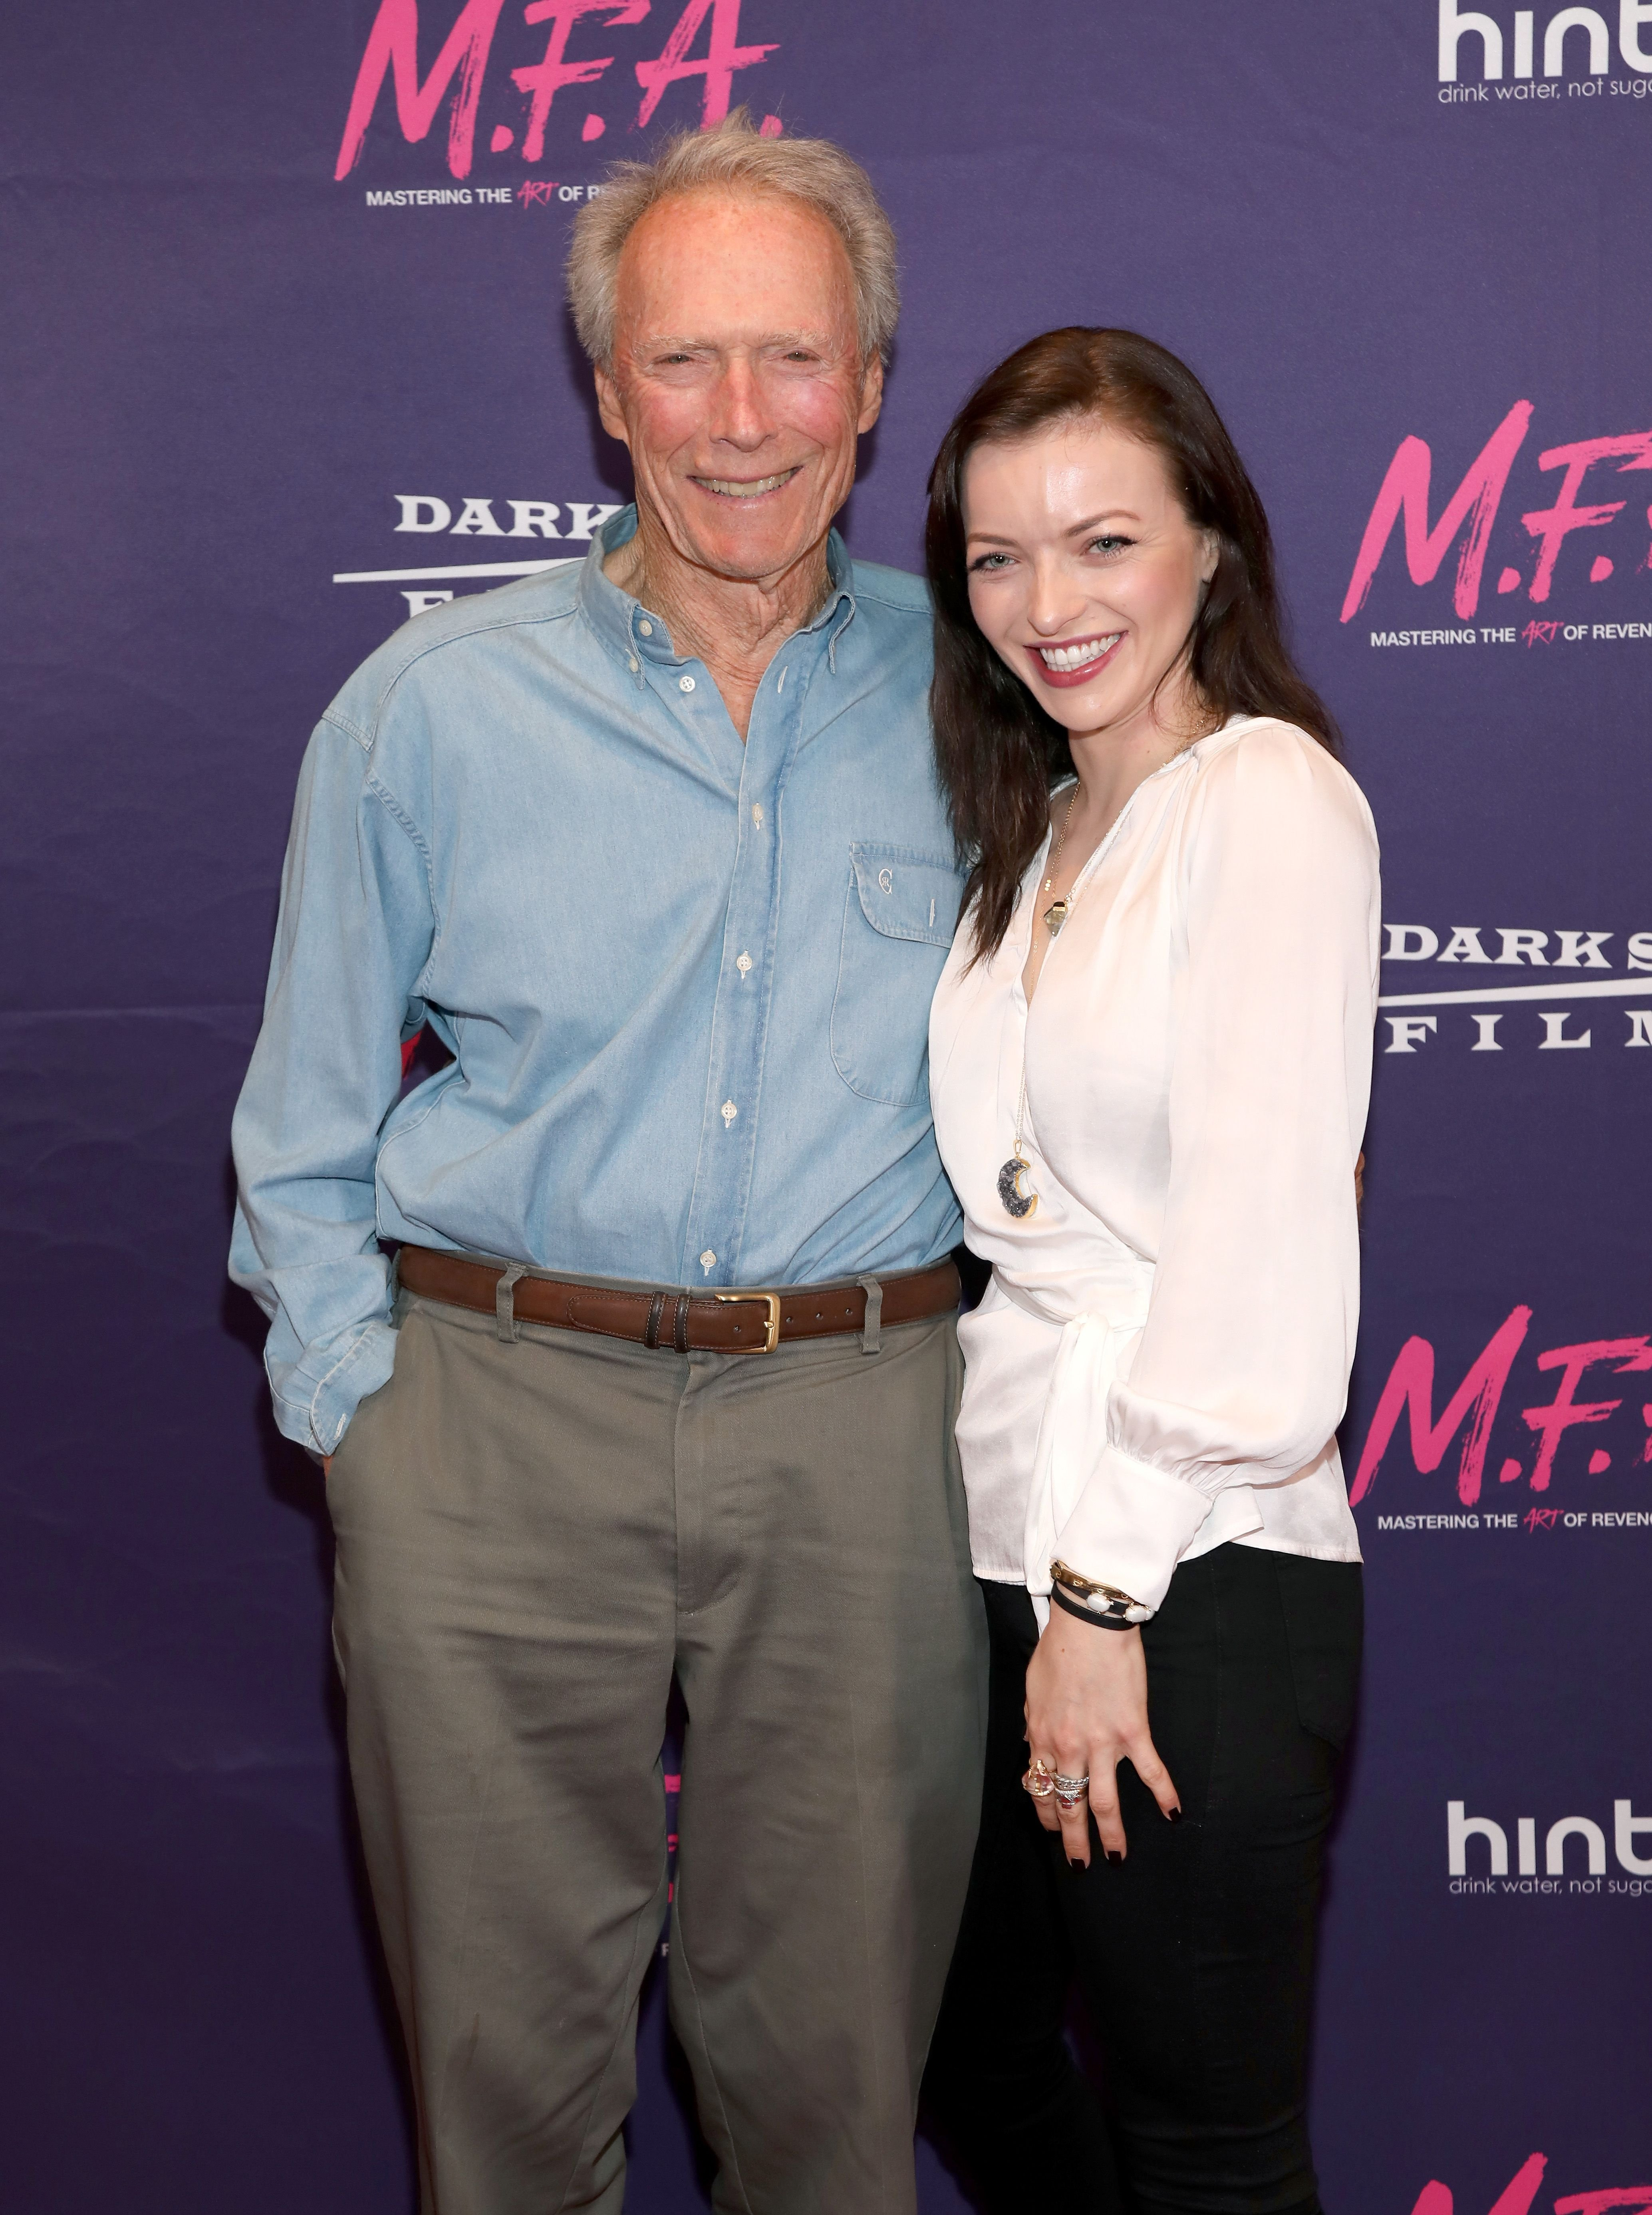 """Clint Eastwood and daughter Francesca Eastwood at the Premiere Of Dark Sky Films' """"M.F.A."""" at The London West Hollywood on October 2, 2017 in West Hollywood, California 